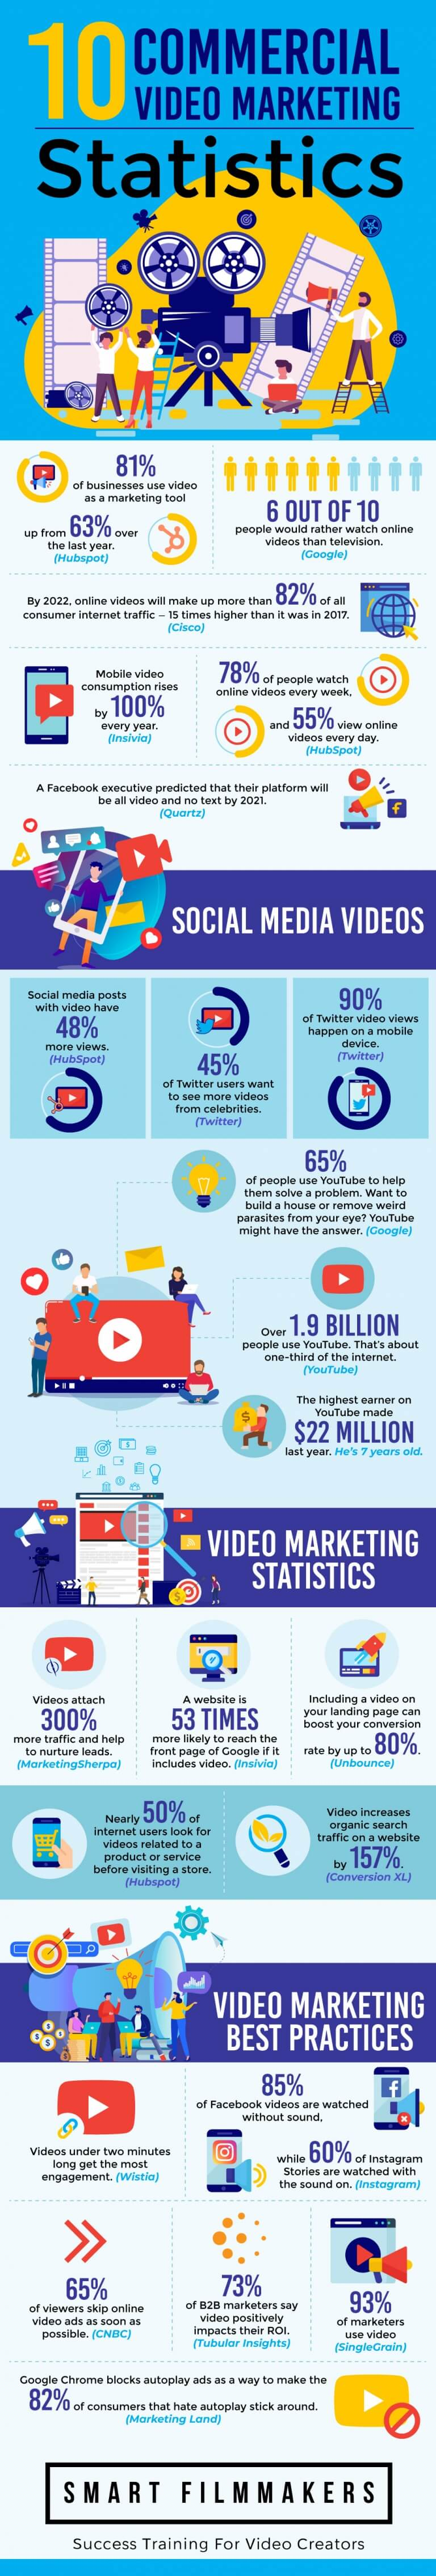 Commercial Video Marketing Statistics